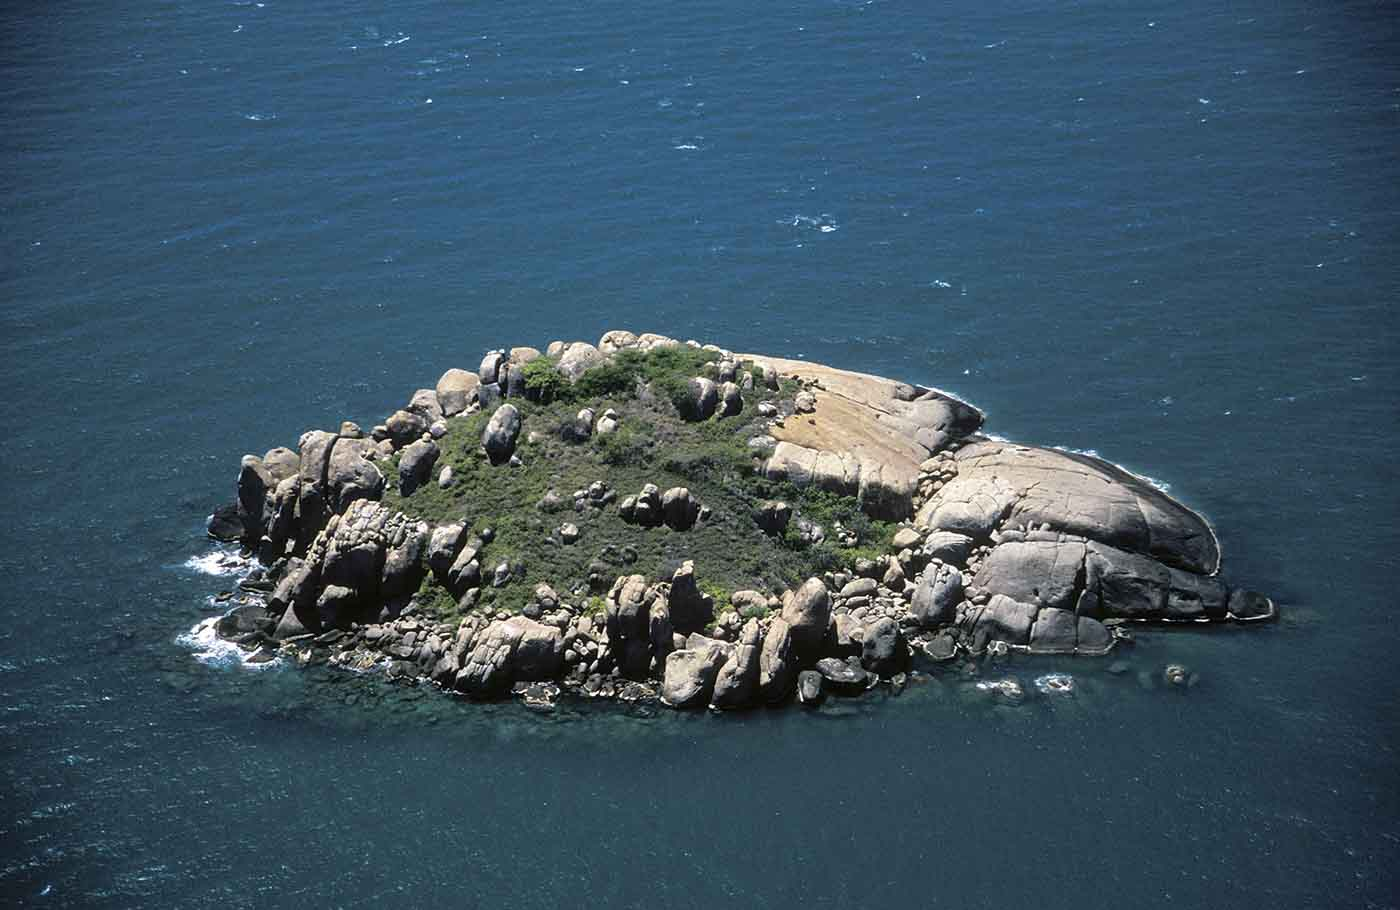 A colour photograph of a small rocky island surrounded by water. The photograph has been taken from an aeroplane. The island is mostly rock, except for a small patch of grass. The rock varies in colour from grey to a pale sandstone. The water around it is blue, with a few scattered white caps on the surface.  - click to view larger image